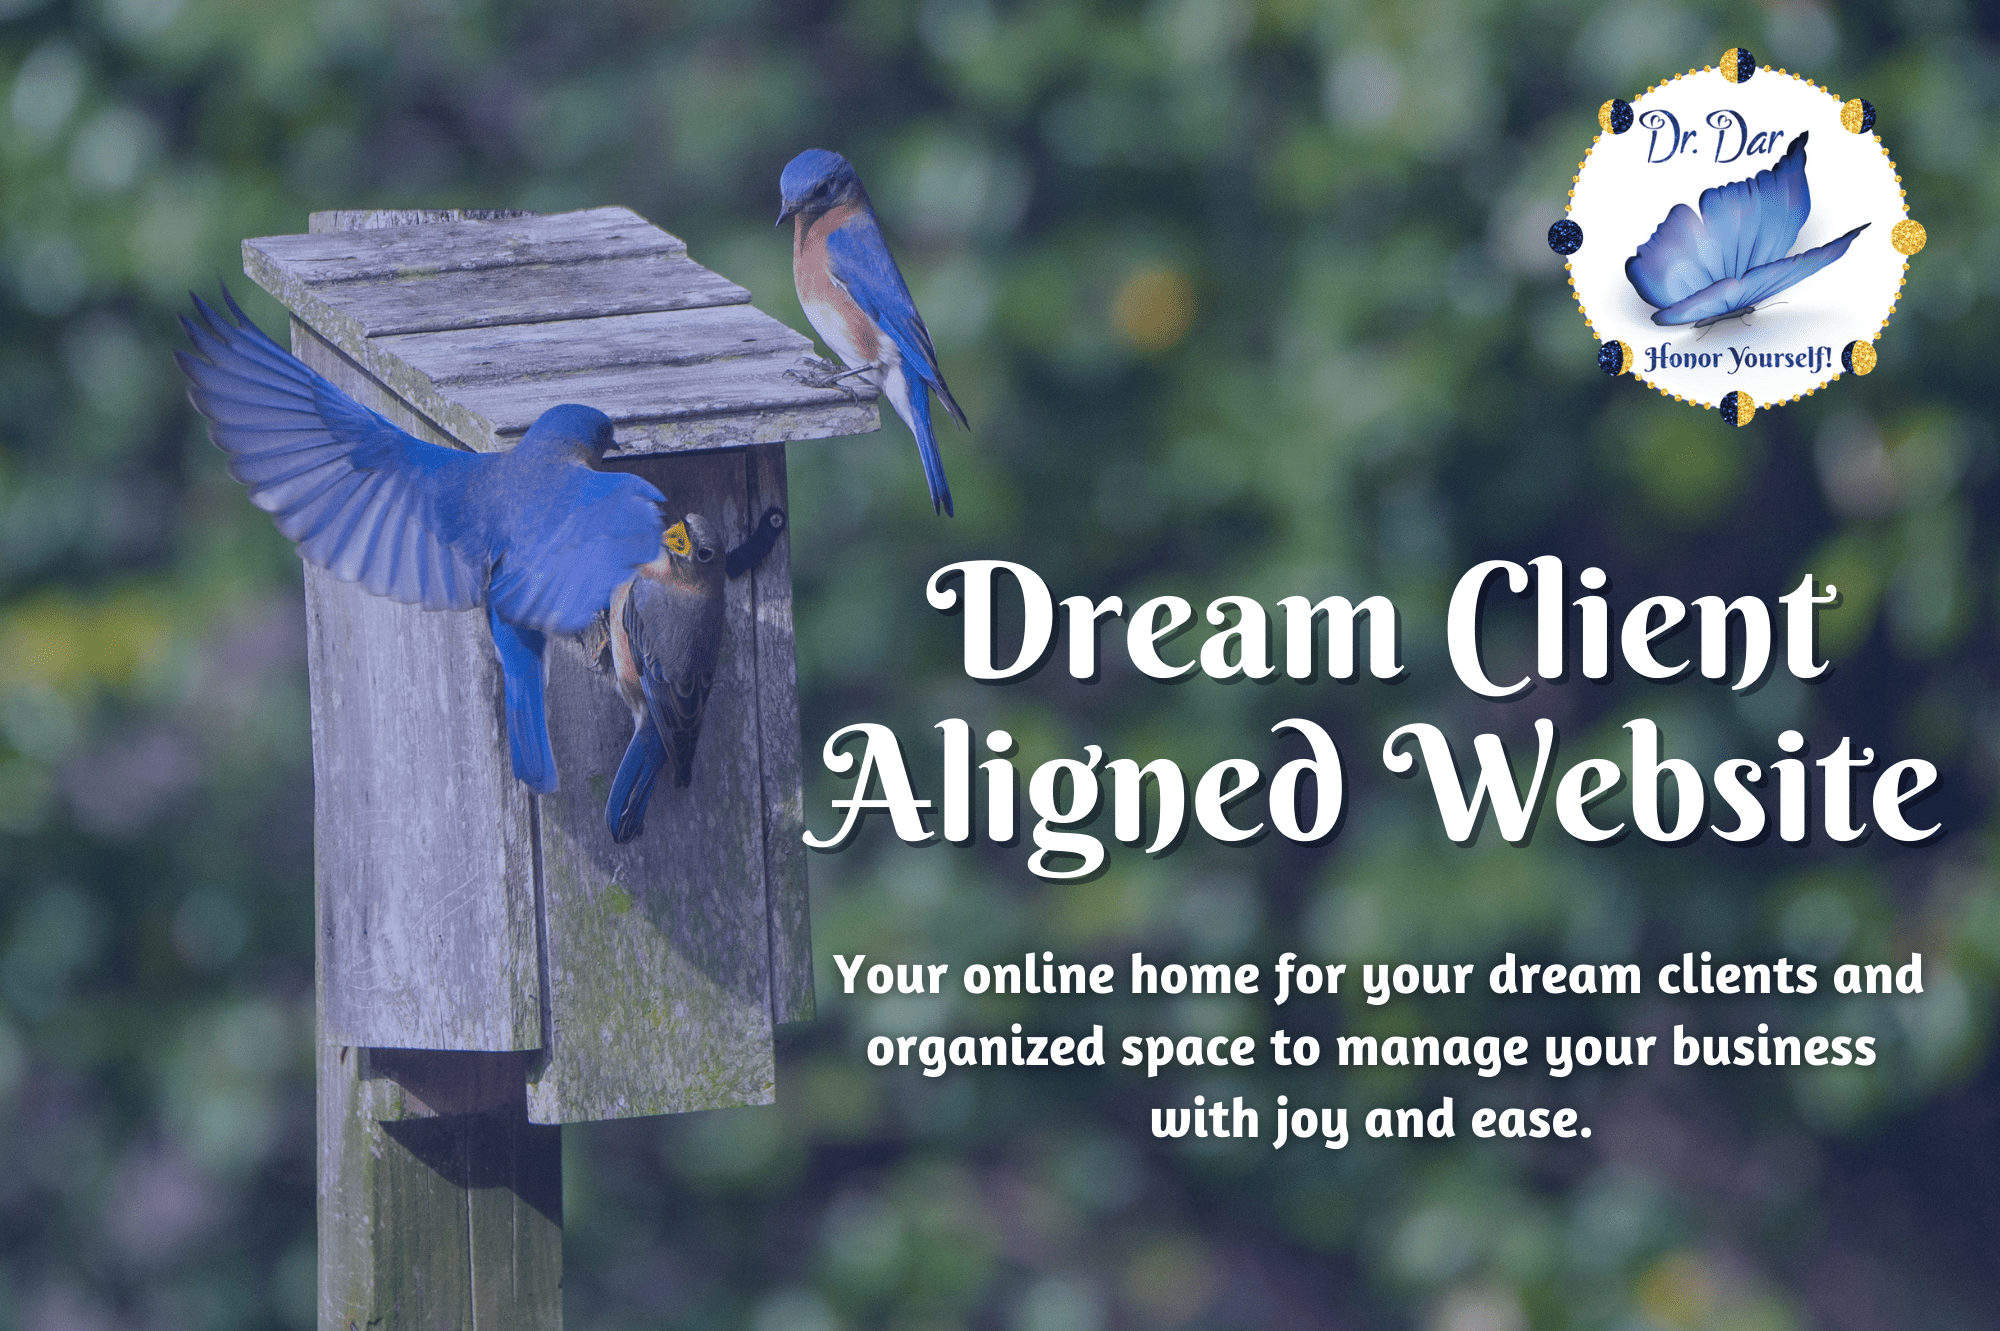 Dream Client Aligned Websites - Design and Advisory - Dr. Dar Hawks